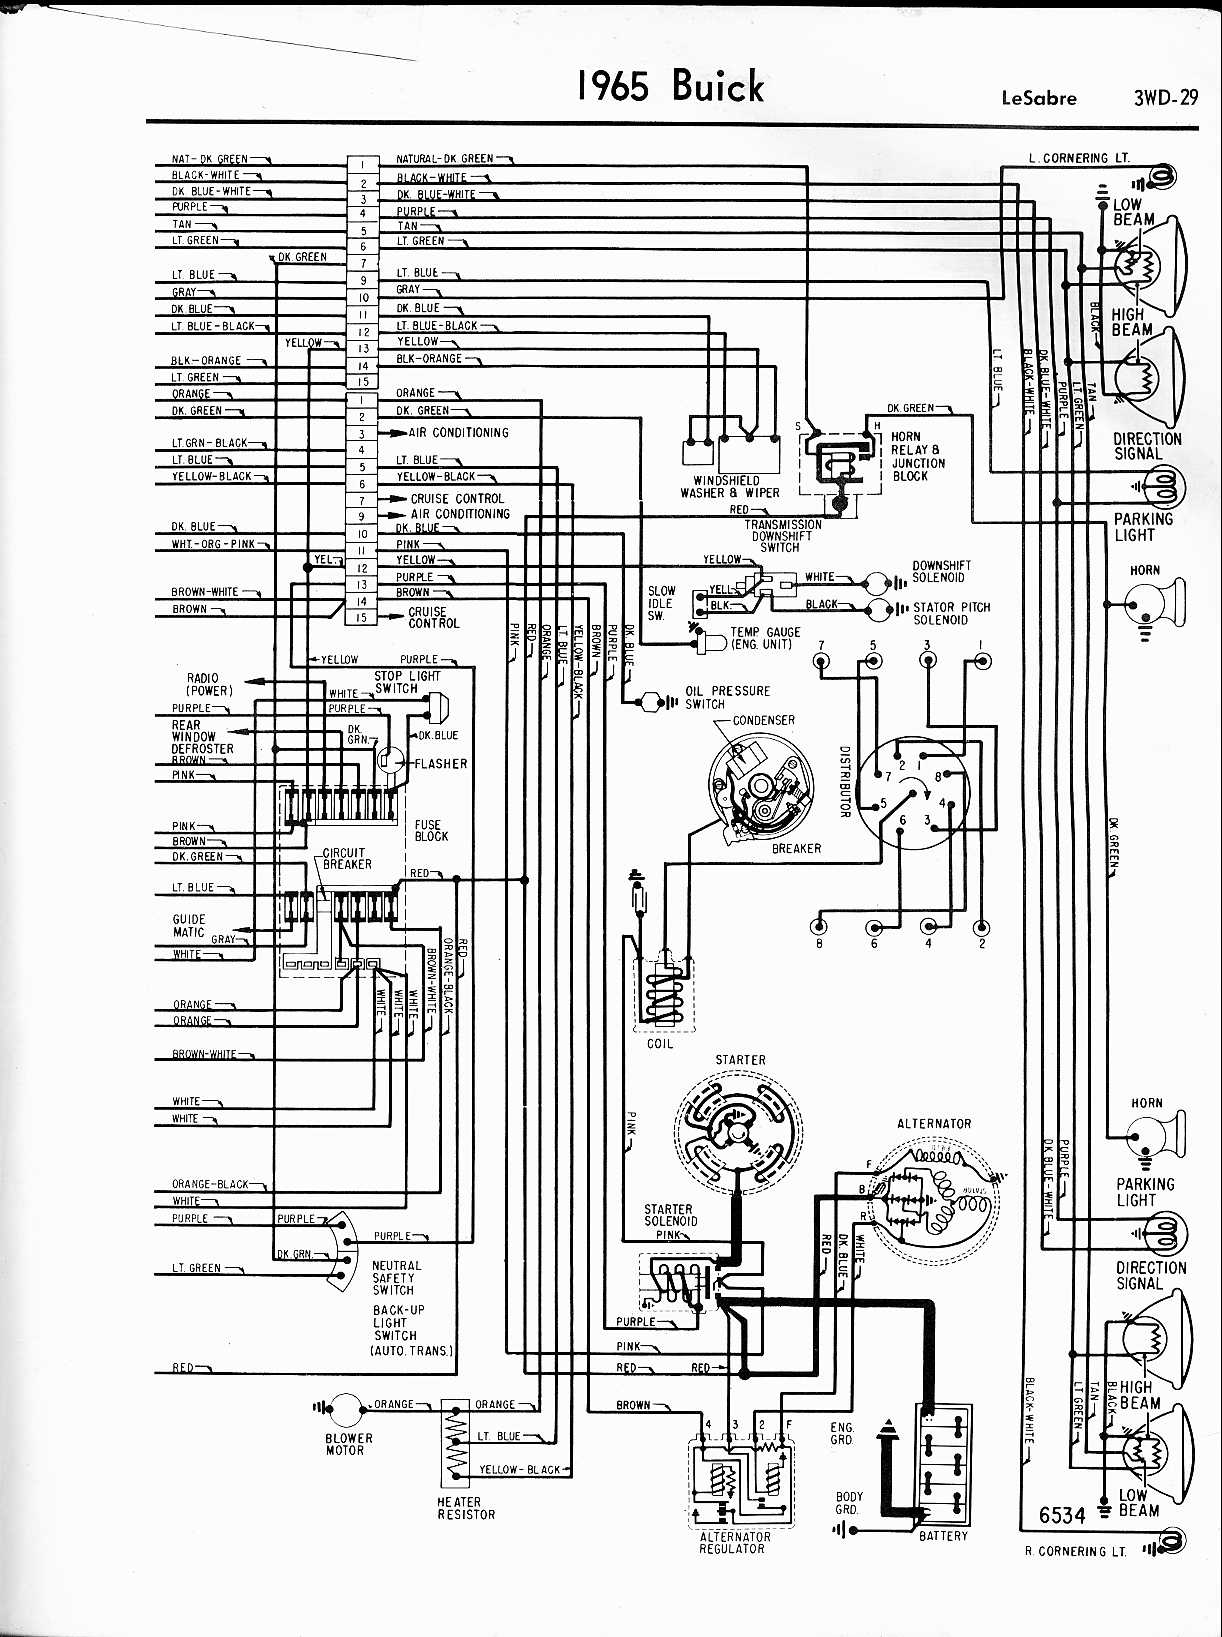 MWireBuic65_3WD 029 buick wiring diagrams 1957 1965 fuse box for 98 buick lesabre at bayanpartner.co